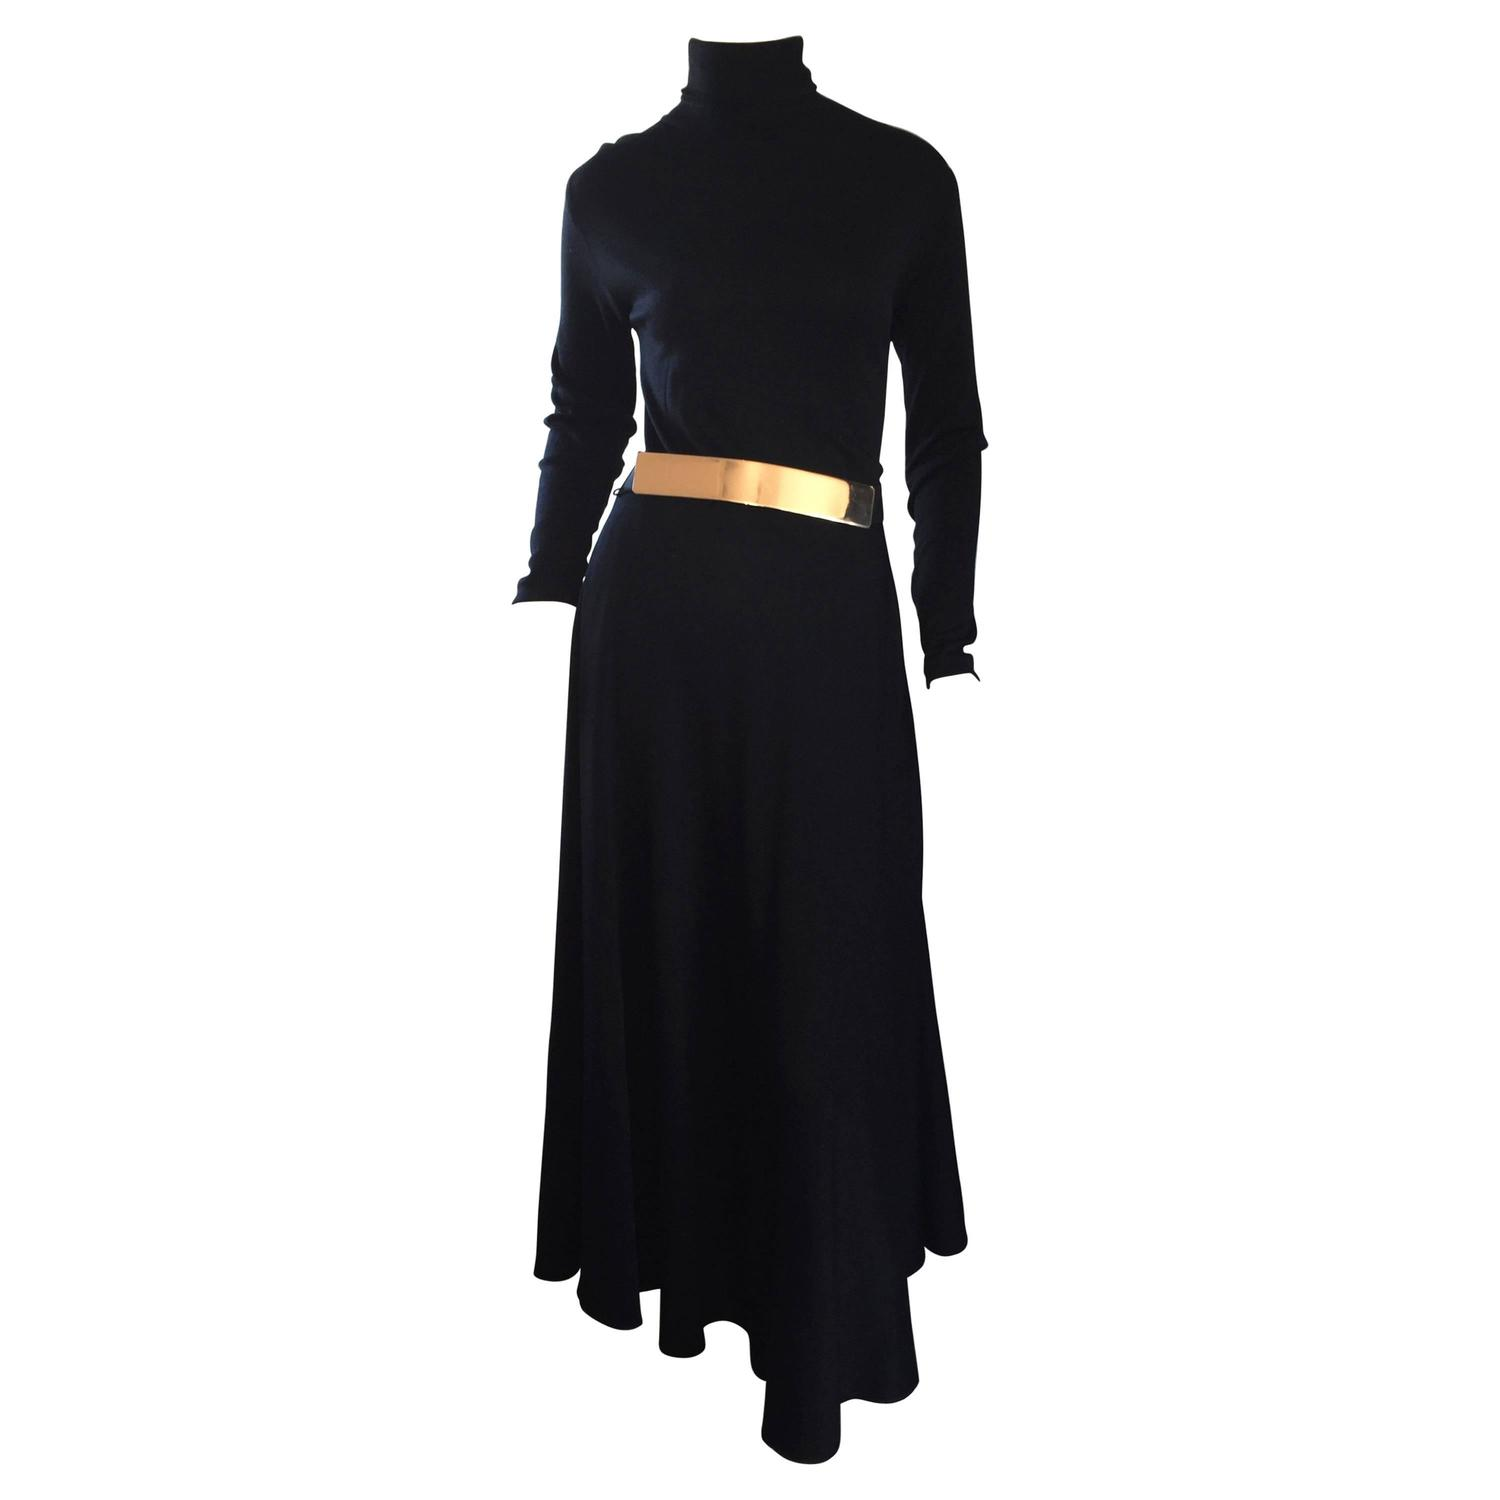 Vintage Ralph Lauren Early 90s Black Wool Turtleneck Dress + Gold Disc Belt